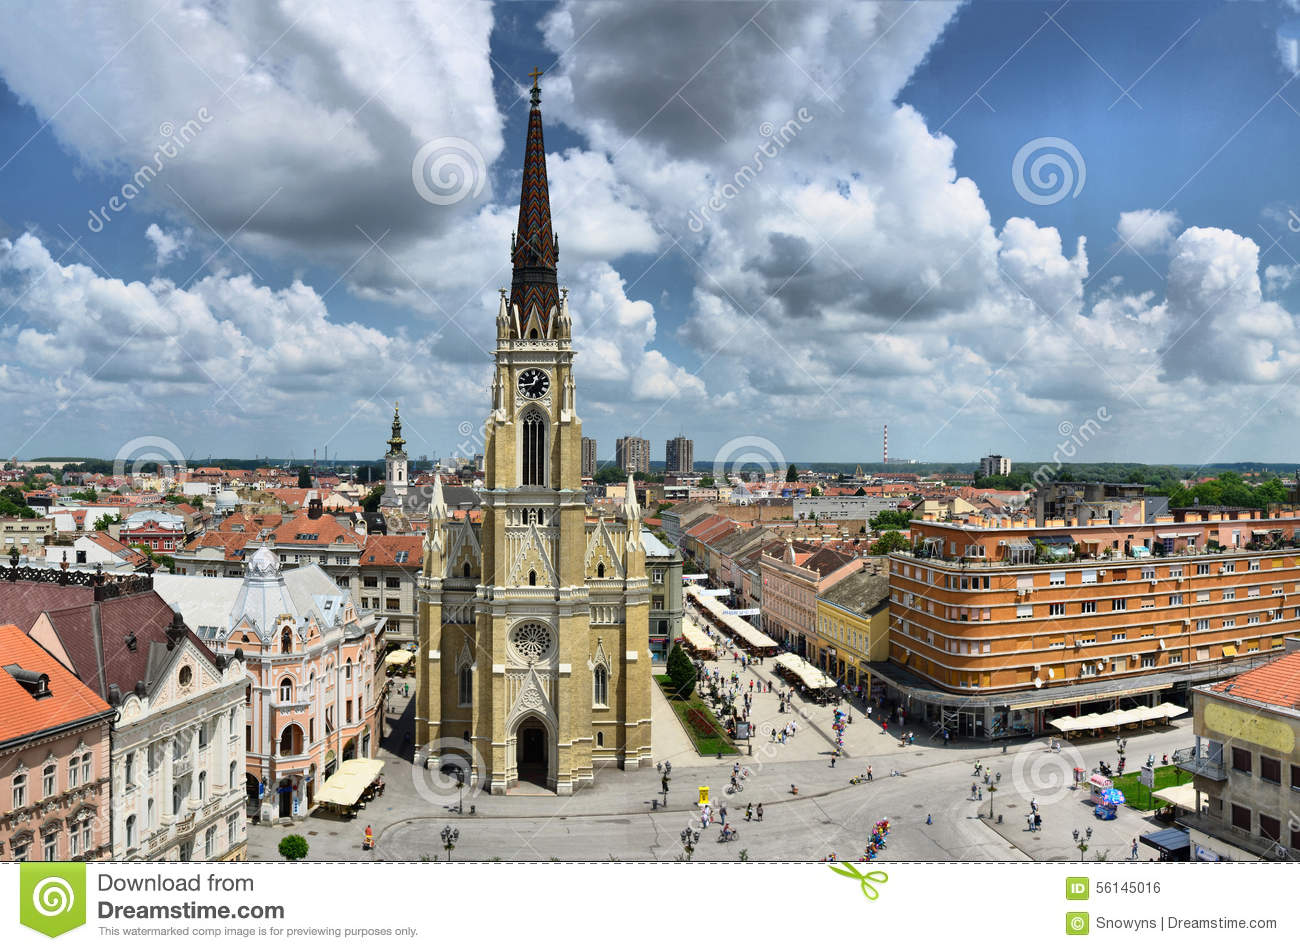 map of vojvodina with Editorial Photo Novi Sad City Vojvodina Serbia Church Name Mary Second Largest Administrative Center One Northern Districts Hall Image56145016 on Prophet Daniel Prophet Der Weltgeschichte Persien Bzw Iran furthermore Novi Sad City Map likewise China Unique Exclusive Destination as well El Imperio Austrohungaro likewise 3.